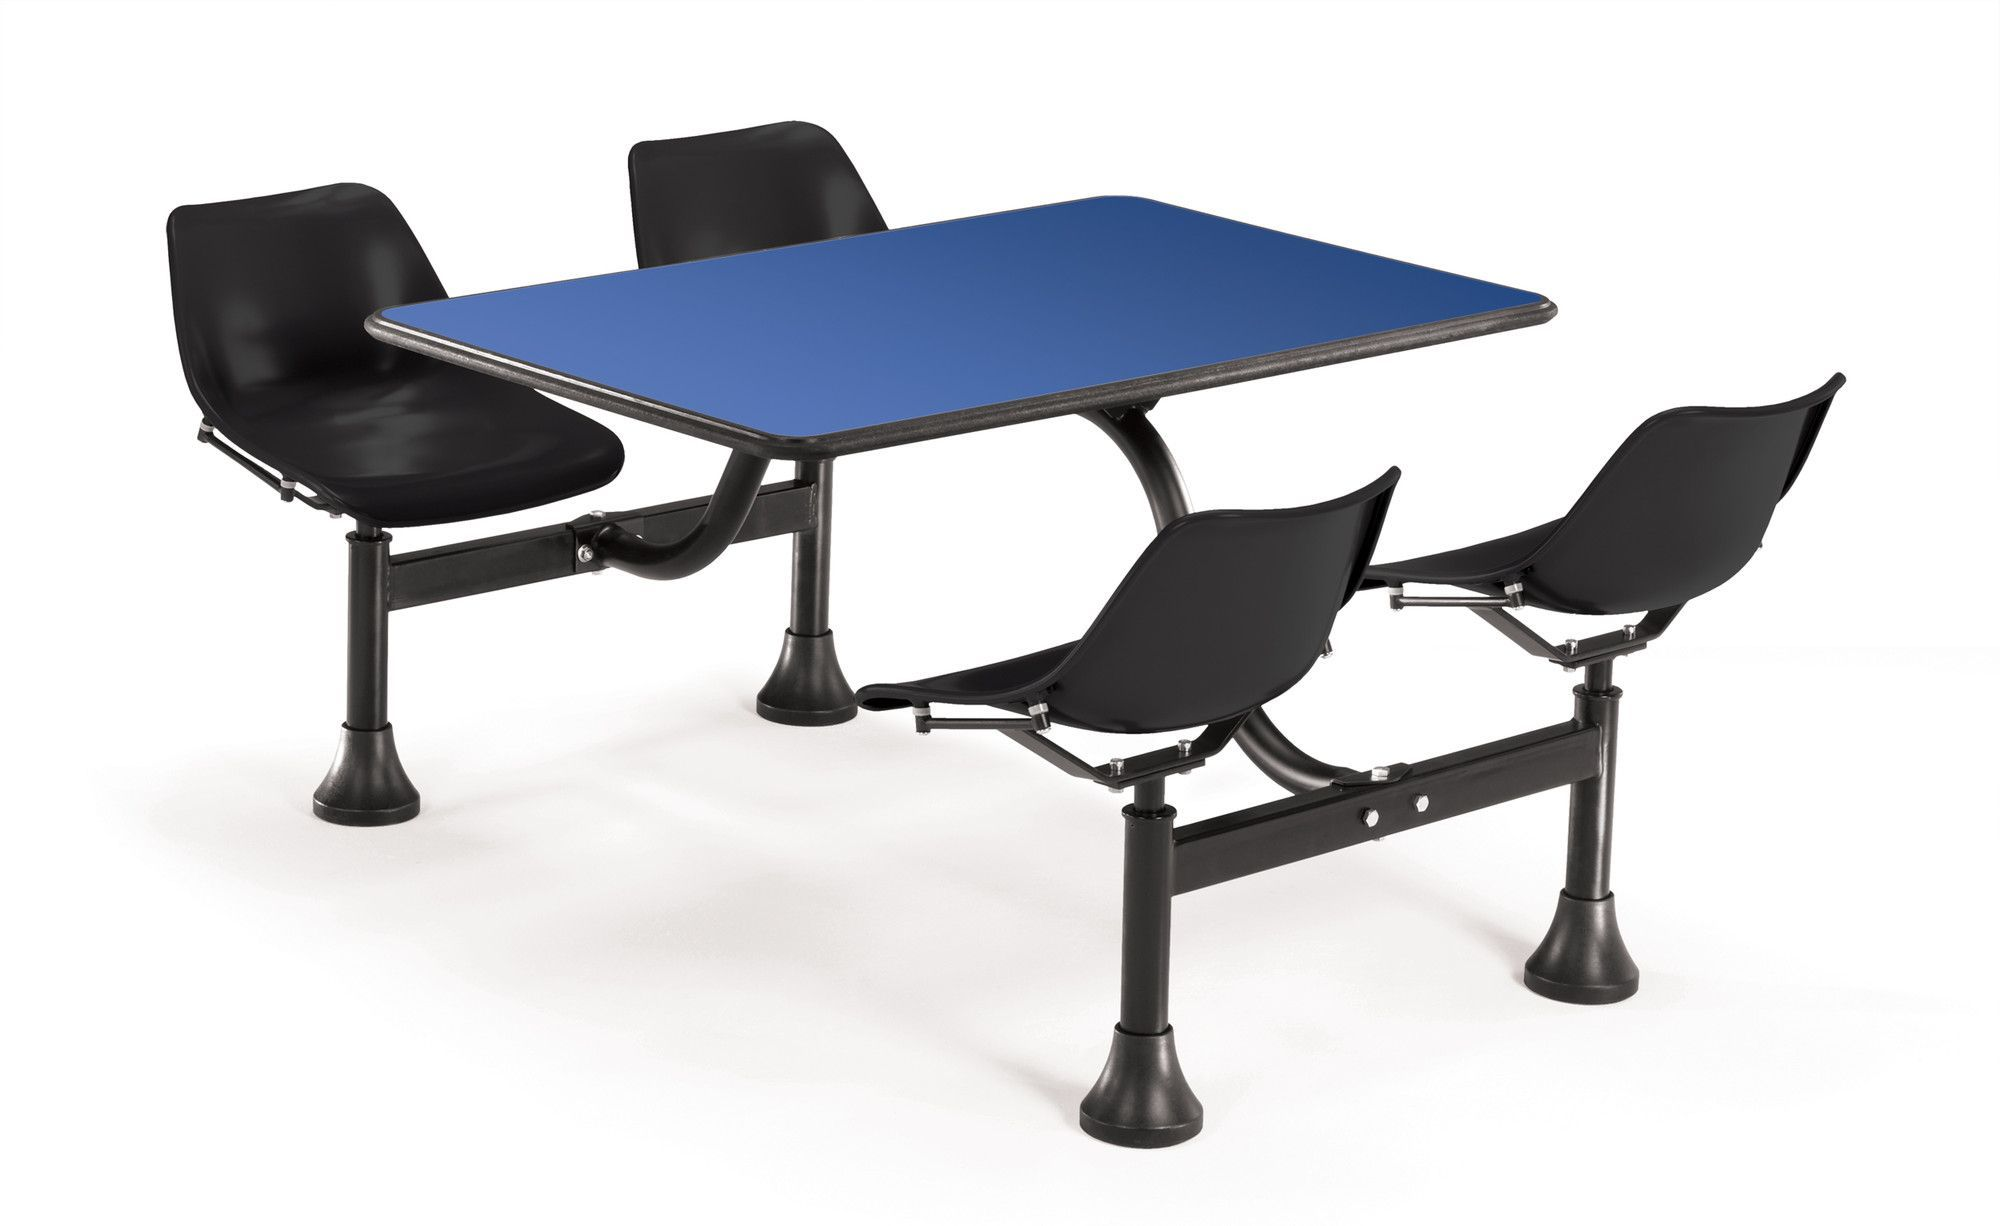 Group Cluster Table And Chairs 65 X 48 Rectangular Cafeteria Table Cafeteria Table Table Chairs Furniture